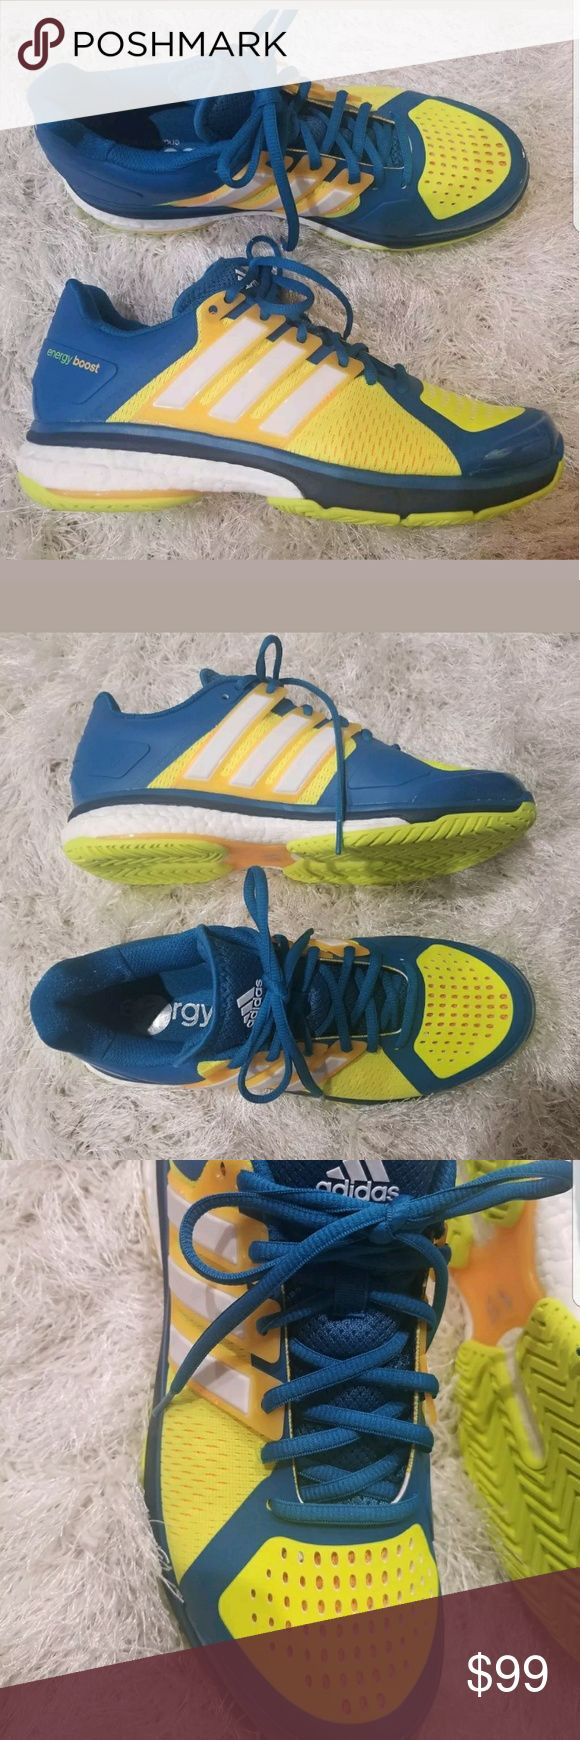 ADIDAS TENNIS SHOES ENERGY BOOST MEN'S YELLOW BLUE ADIDAS TENNIS SHOES ENERGY BOOST MEN'S YELLOW BLUE WHITE AQ2294  Brand new item without box  Size 10  Retail $180  The Tennis Energy Boost combines durable support with reactive cushioning.  All items are shipped with care.  Thanks for looking! Nike Shoes Sneakers